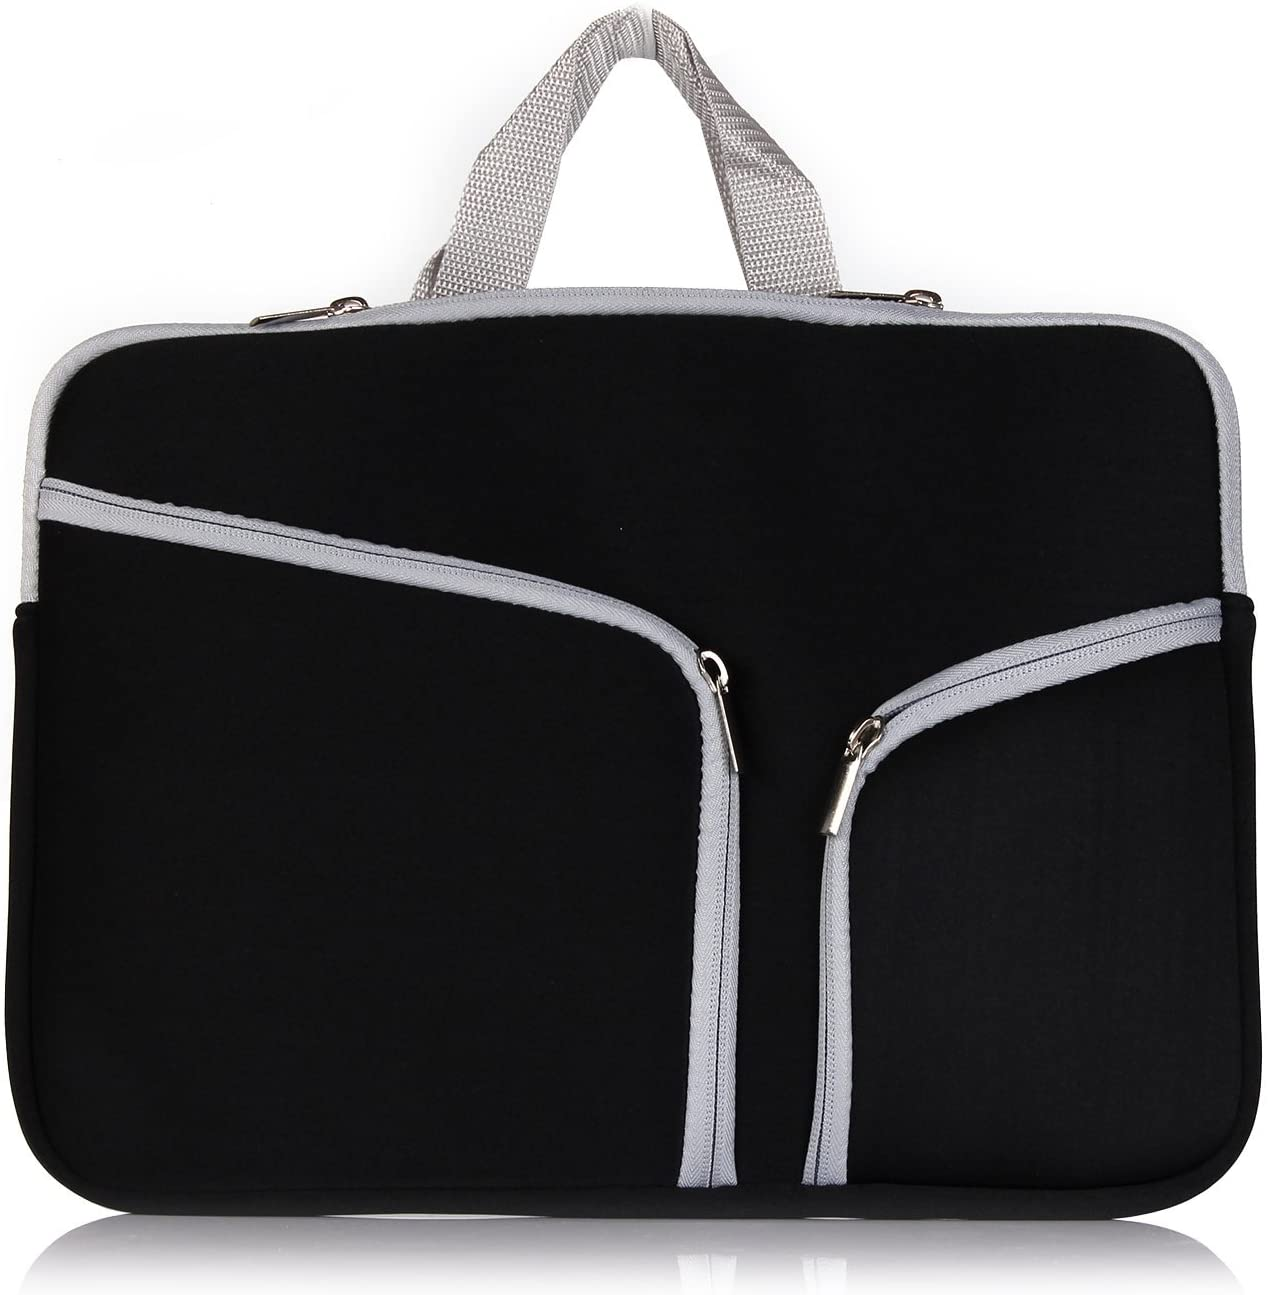 L2W 13.3-Inch Neoprene Laptop Protective Sleeve Carrying Case Bag with Zipper & Built-in 2 Pockets, Handbag, Black